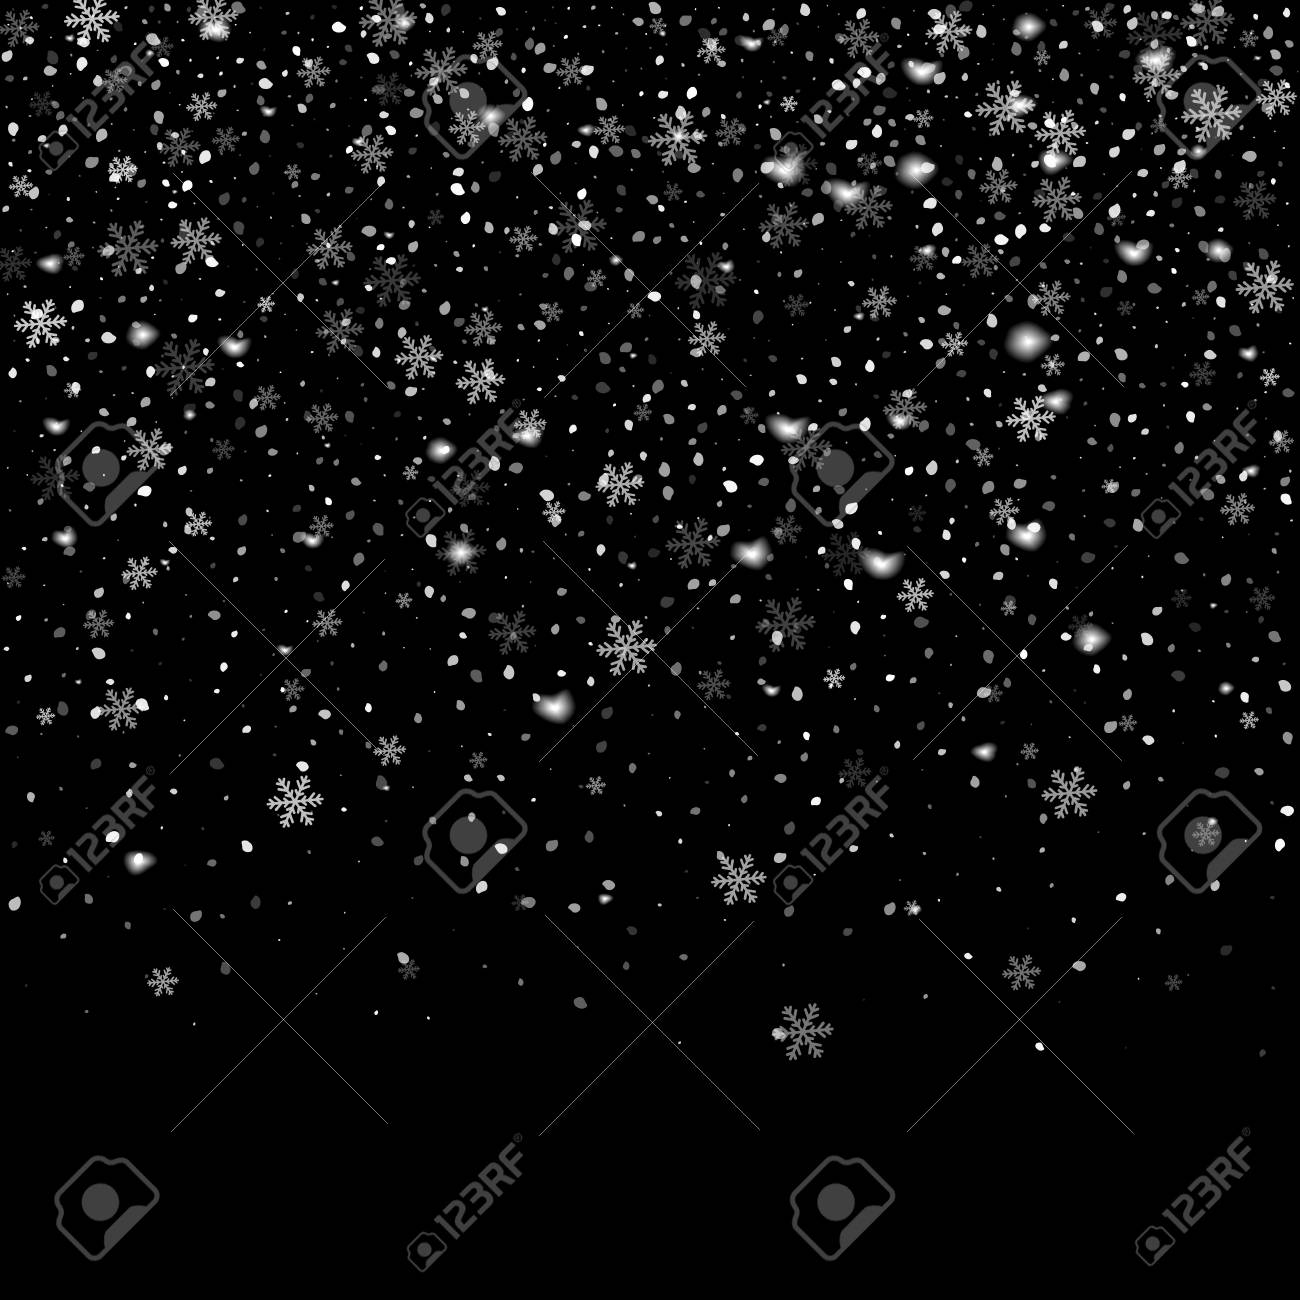 hight resolution of abstract creative christmas falling snow isolated on background vector illustration clipart art for xmas holiday